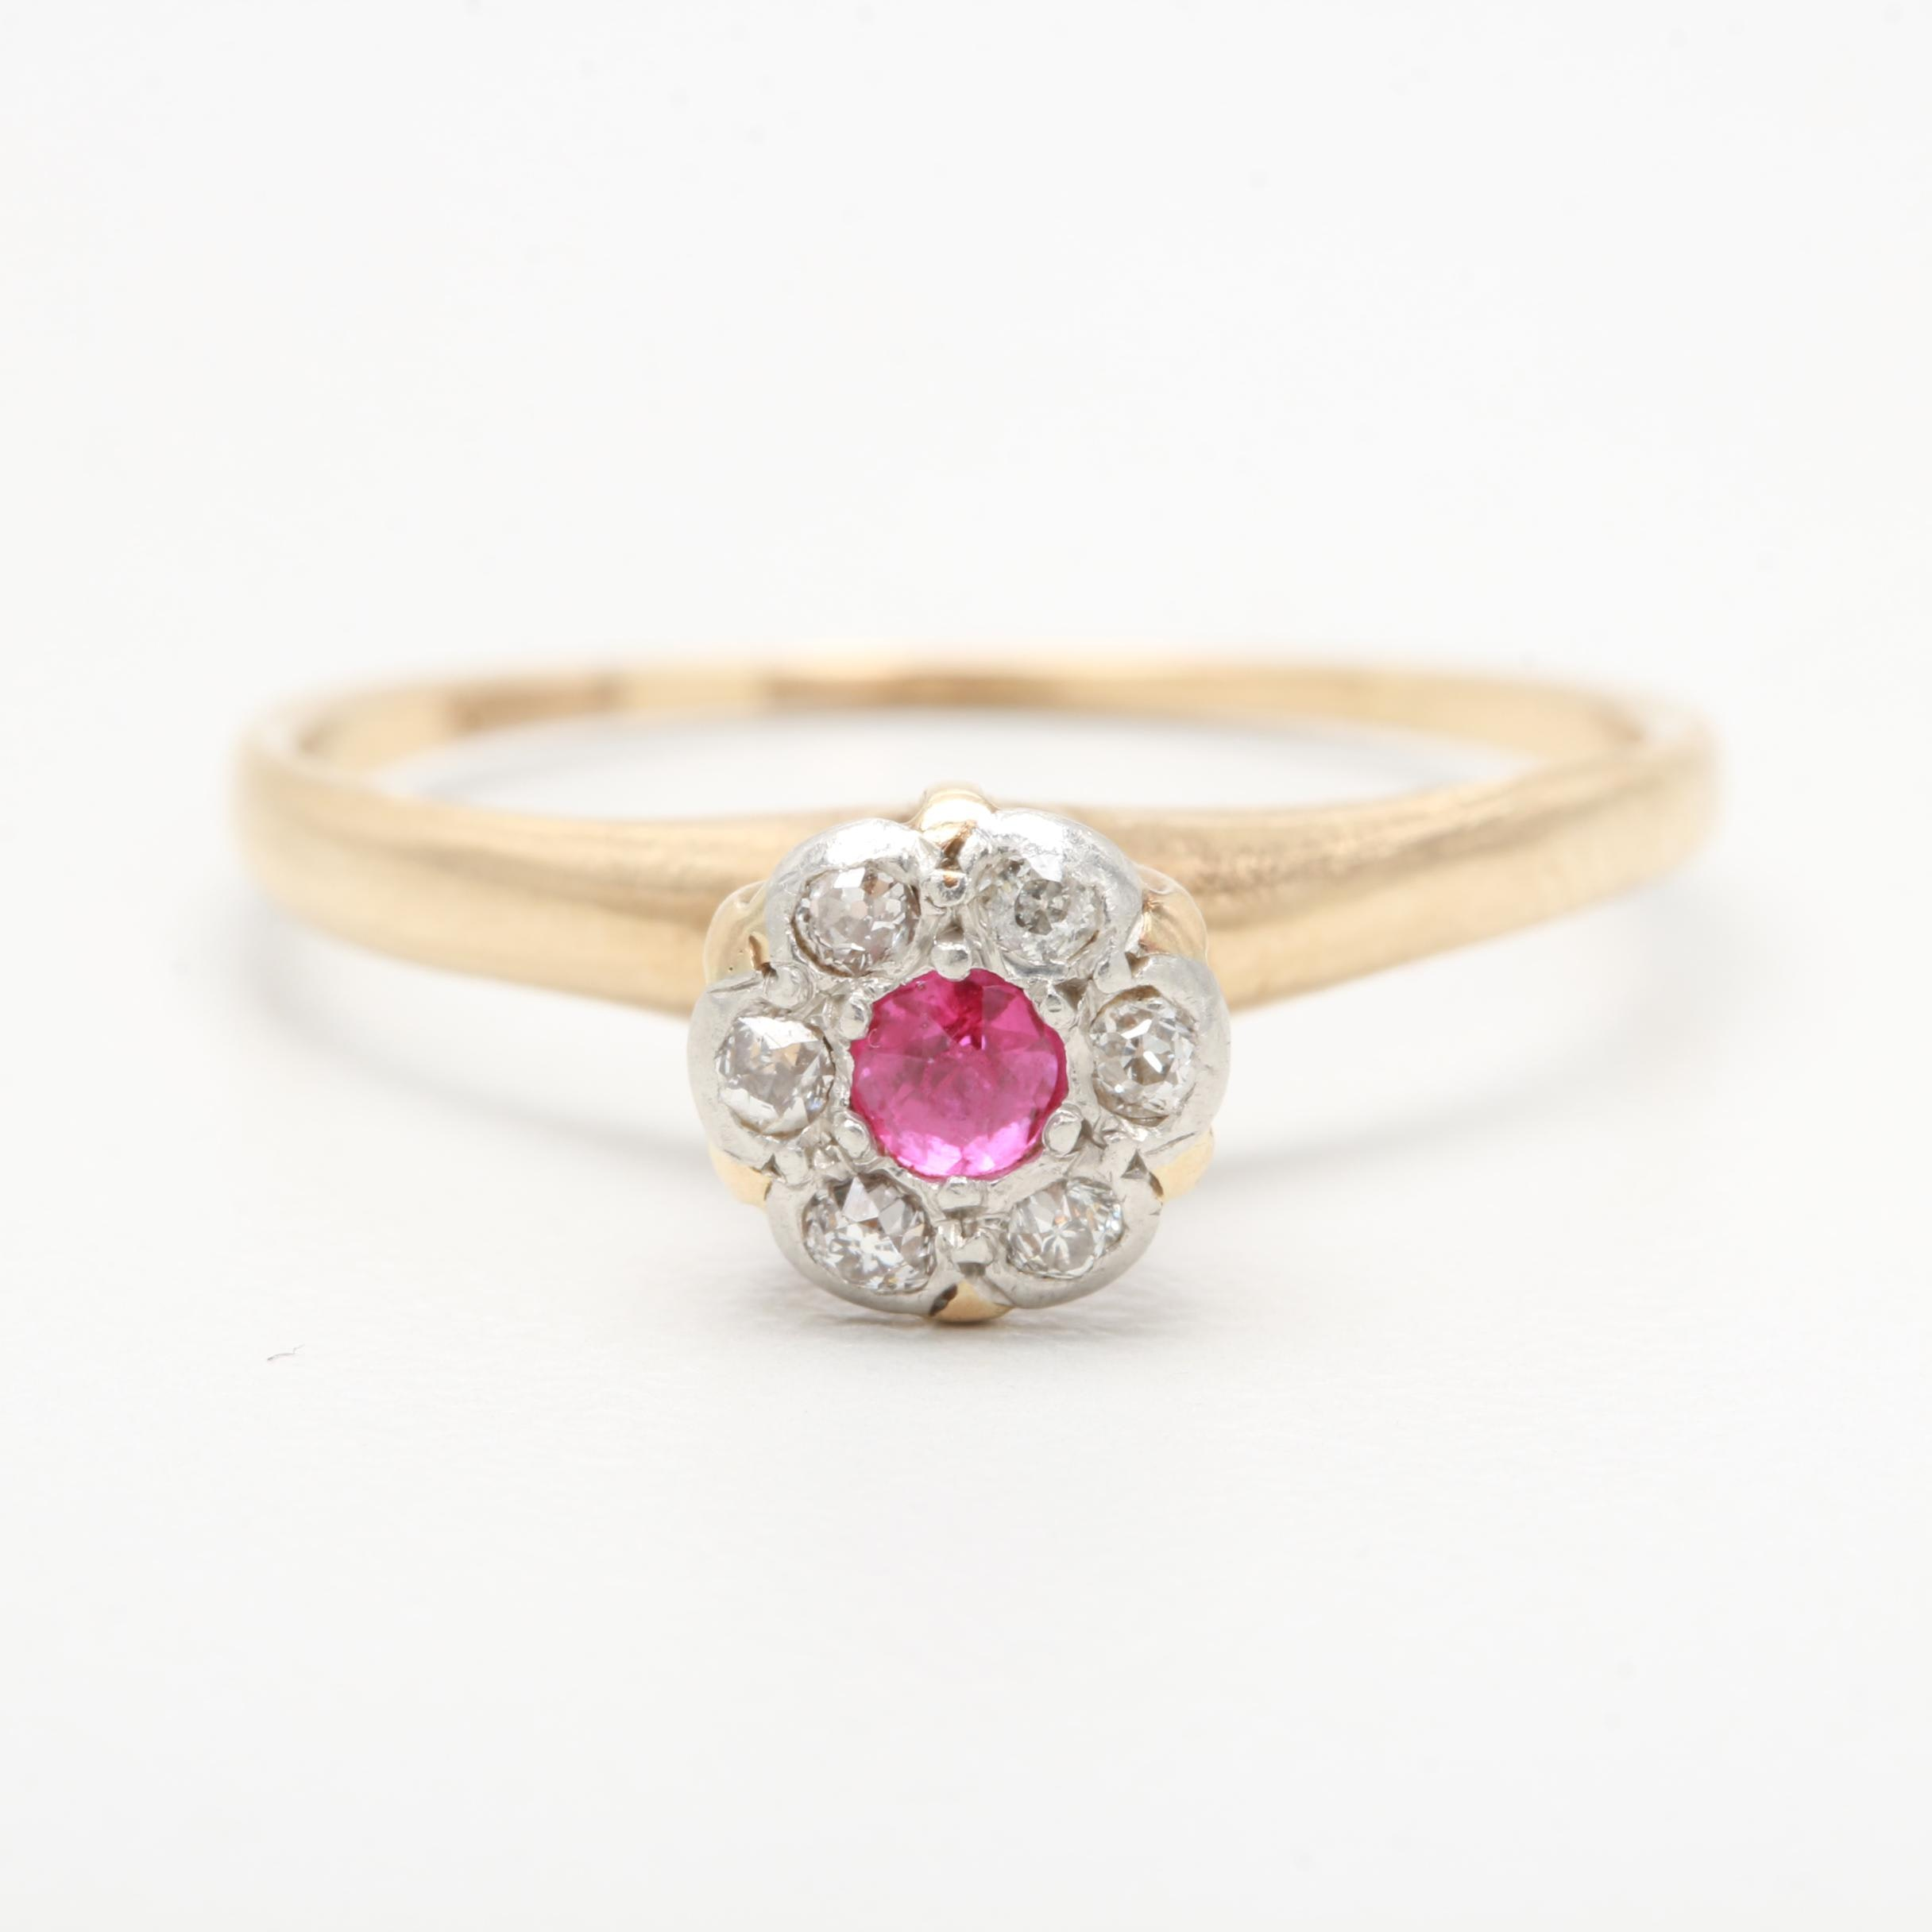 14K Yellow Gold Synthetic Ruby and Diamond Ring with Platinum Accent